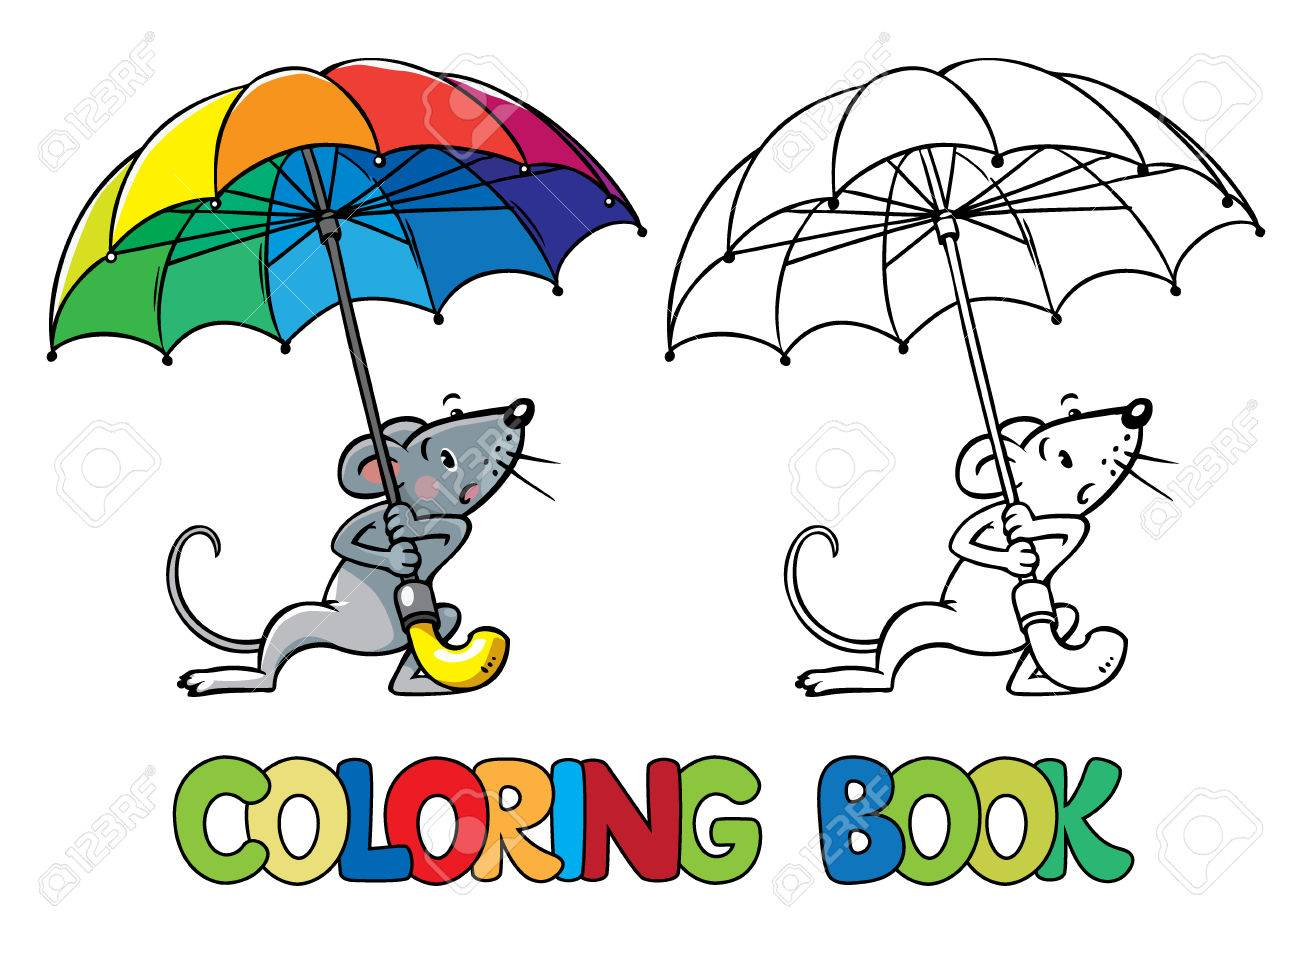 Coloring Book Or Coloring Picture Of Mouse With Rainbow-colored ...